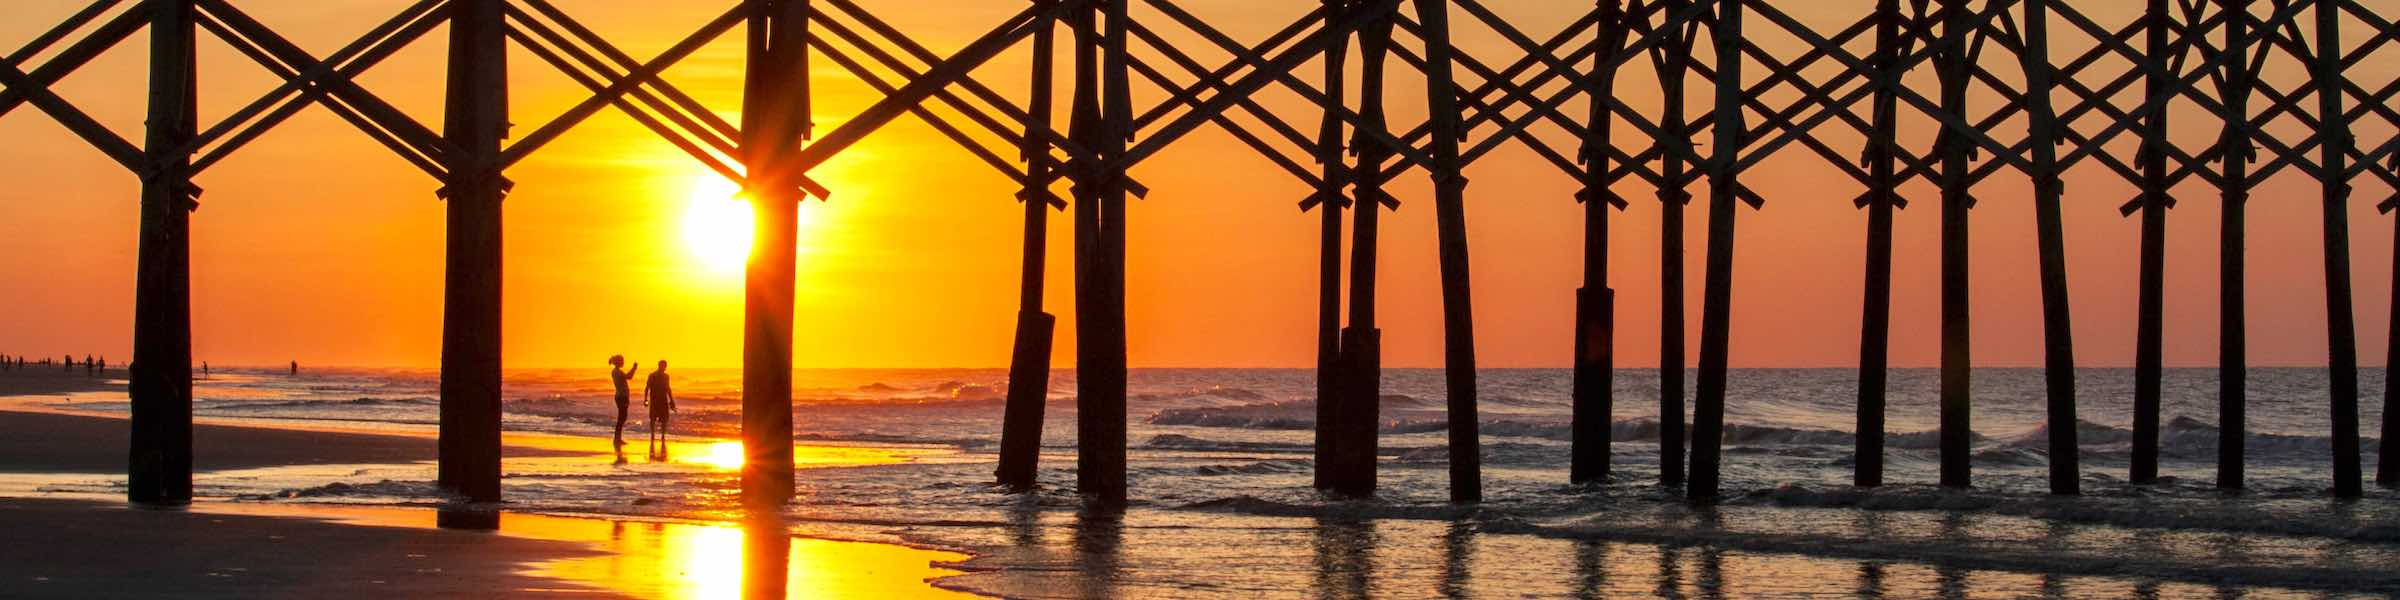 Things To Do In Folly Beach SC In Spring 2018